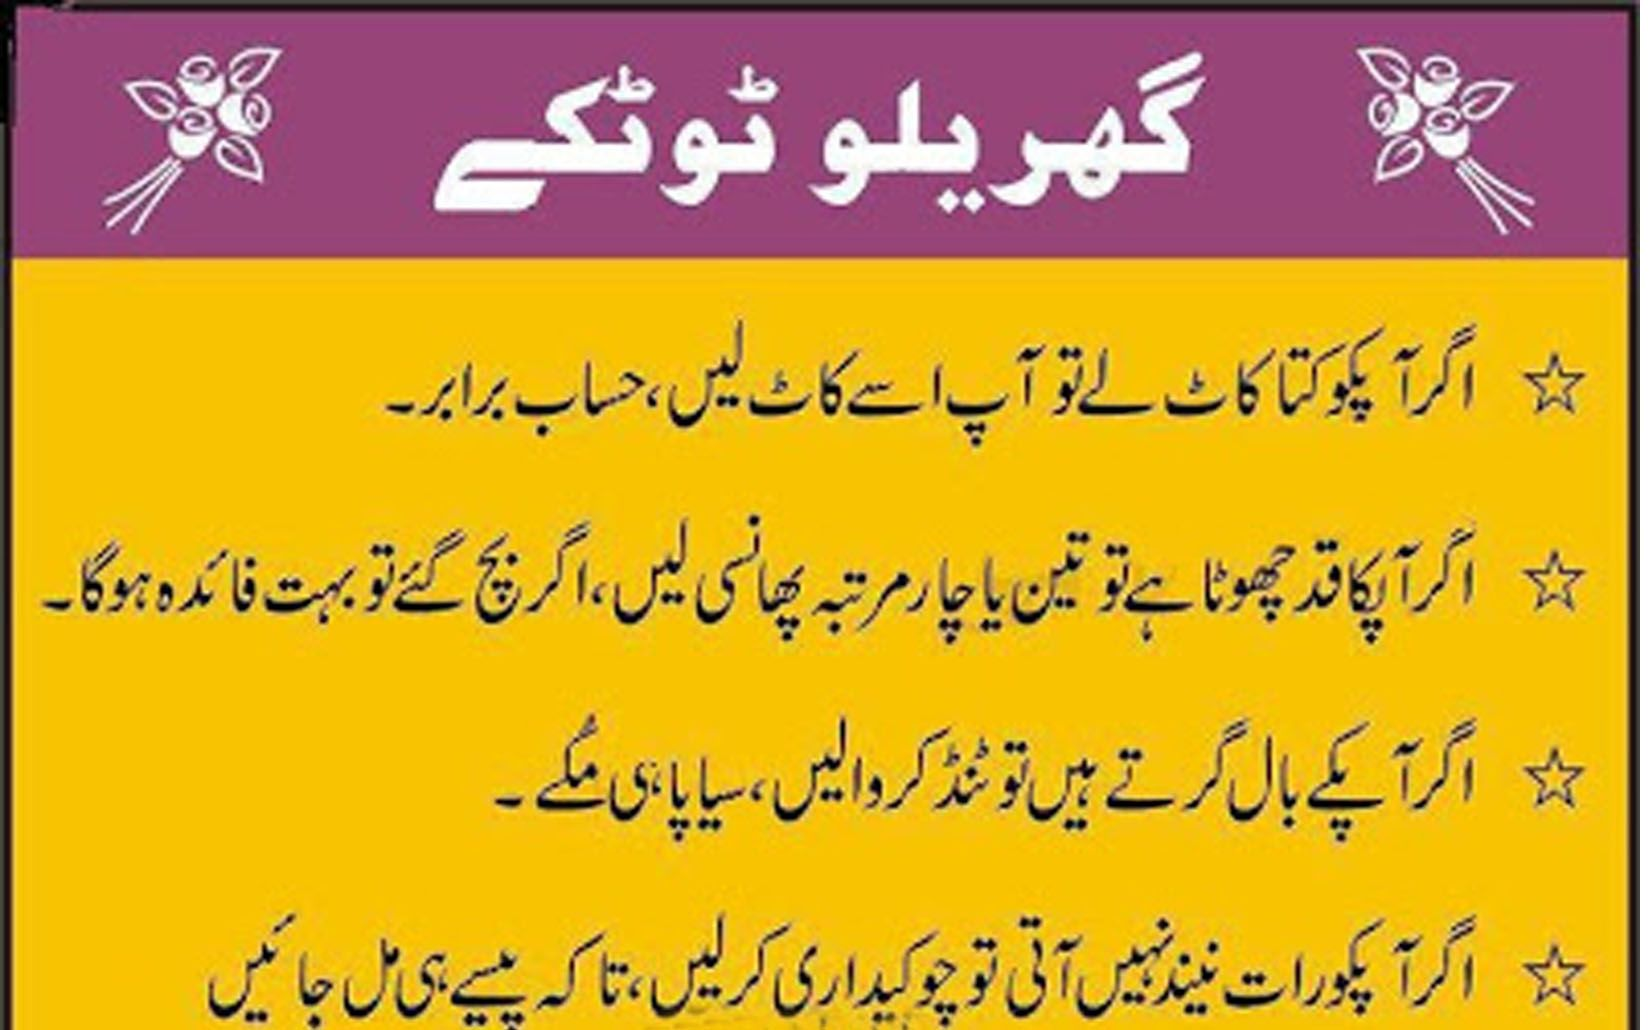 Funny Quotes About Friendship And Memories In Urdu : quotes about life funny life quotes nice quotes about life good quotes ...